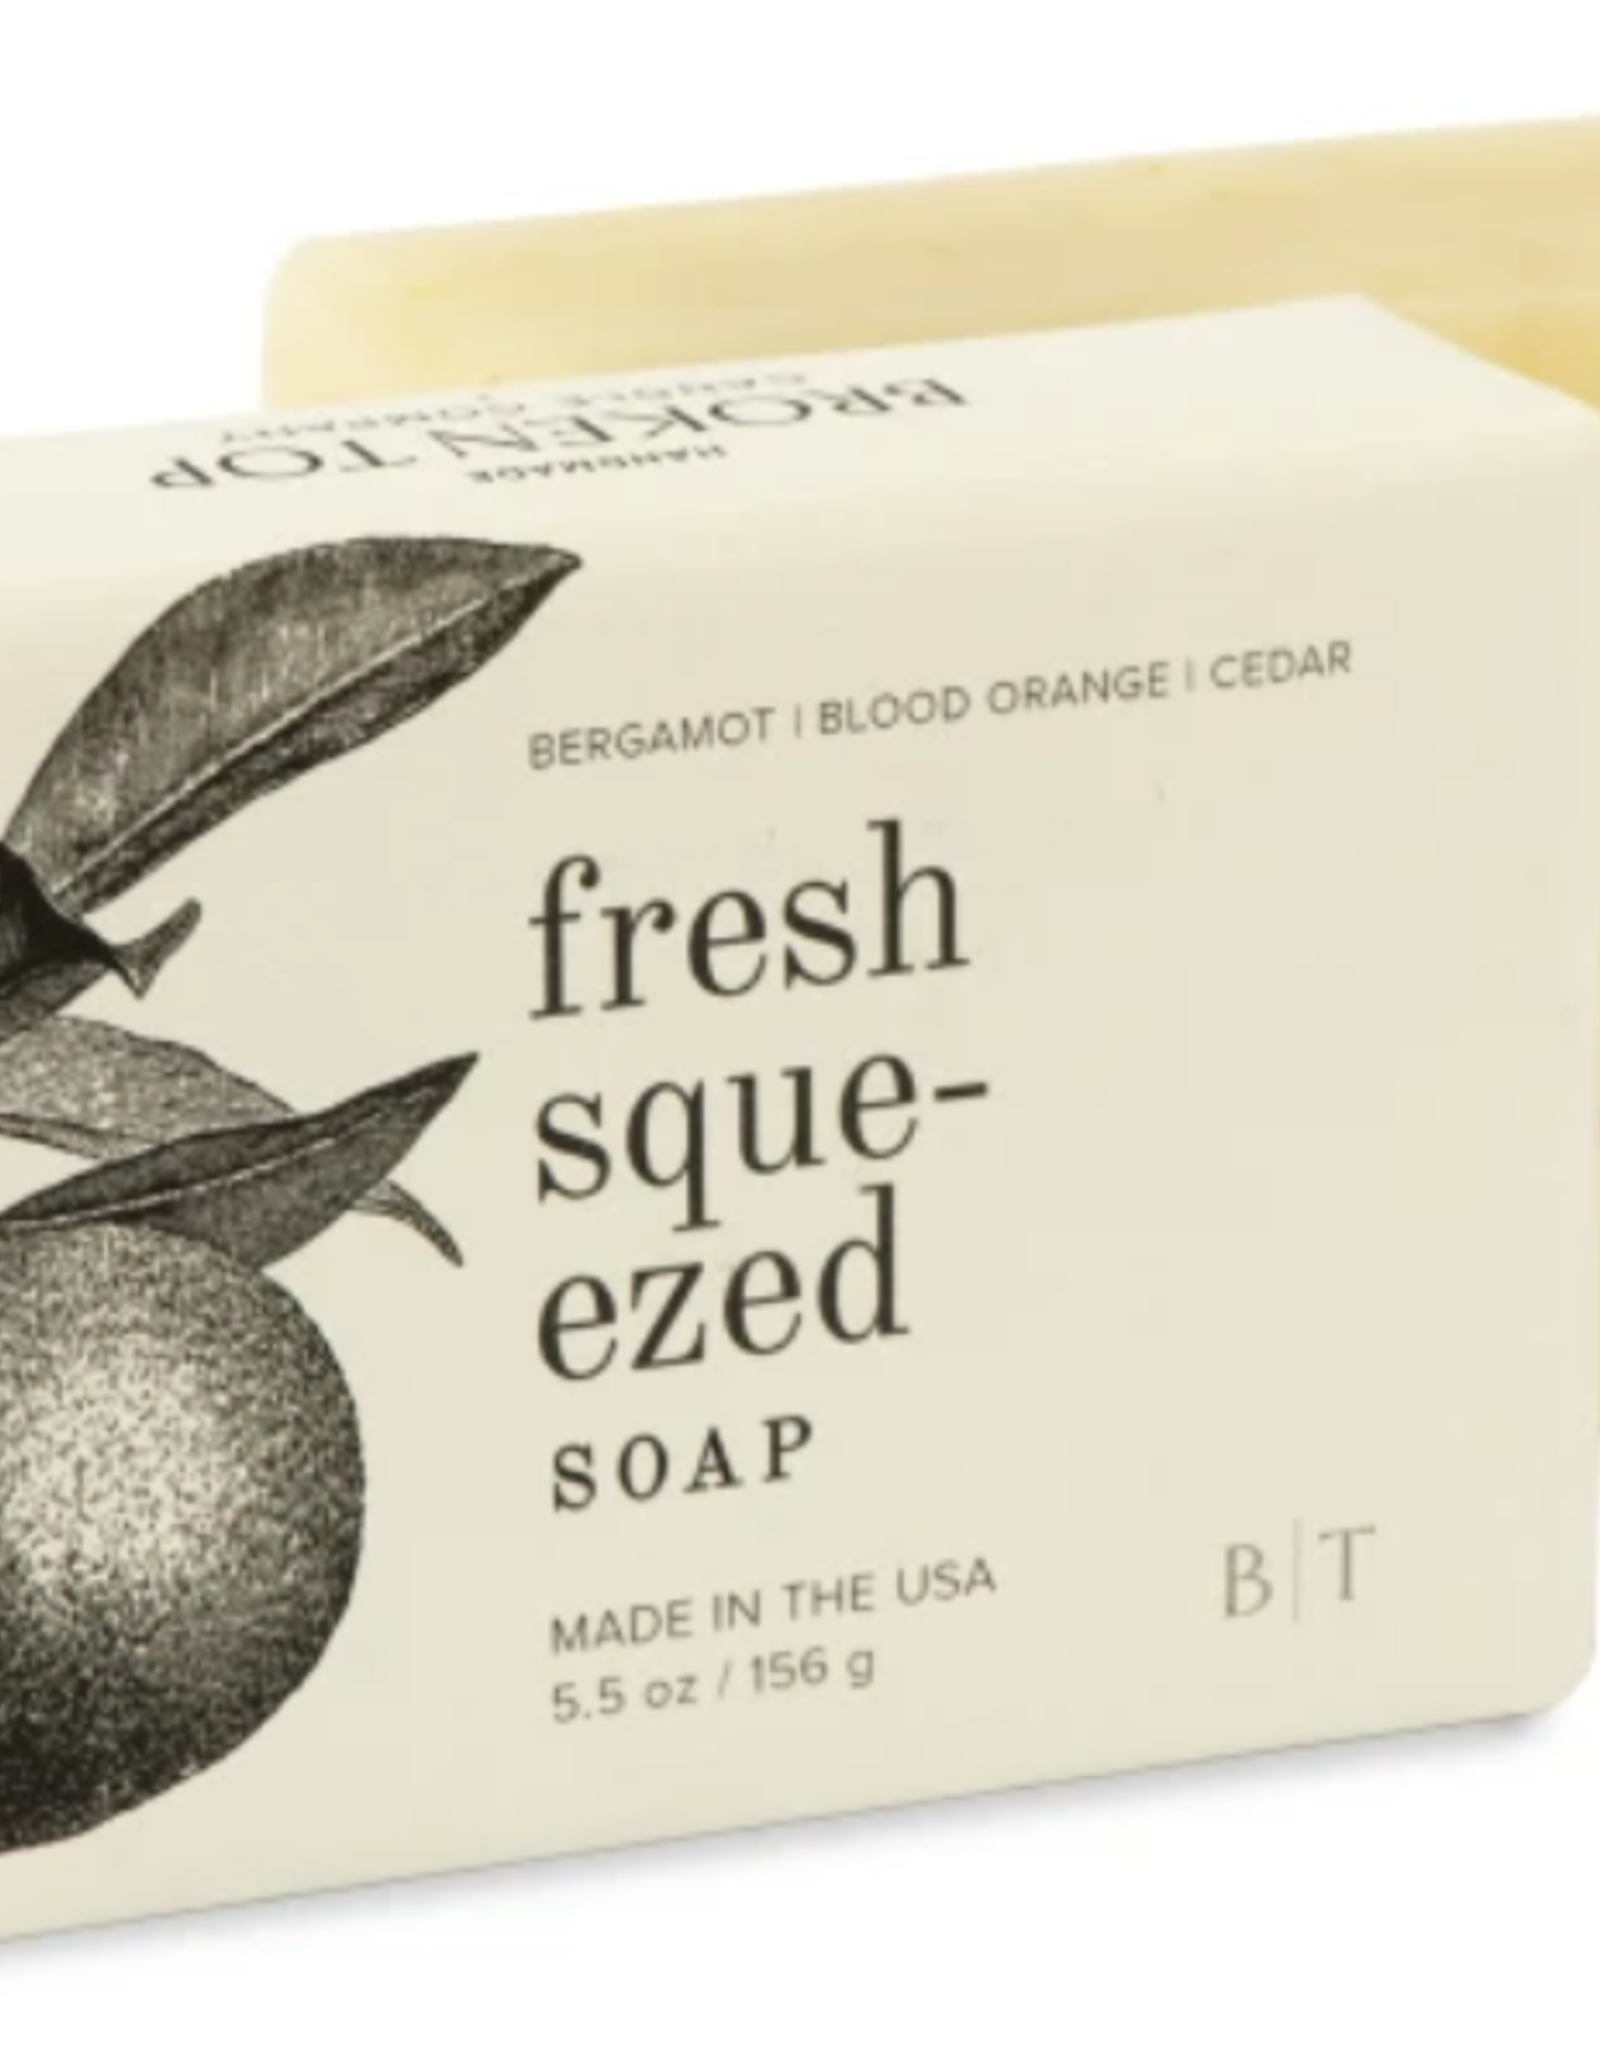 SOAP BAR FRESH SQUEEZED 5.5 OZ